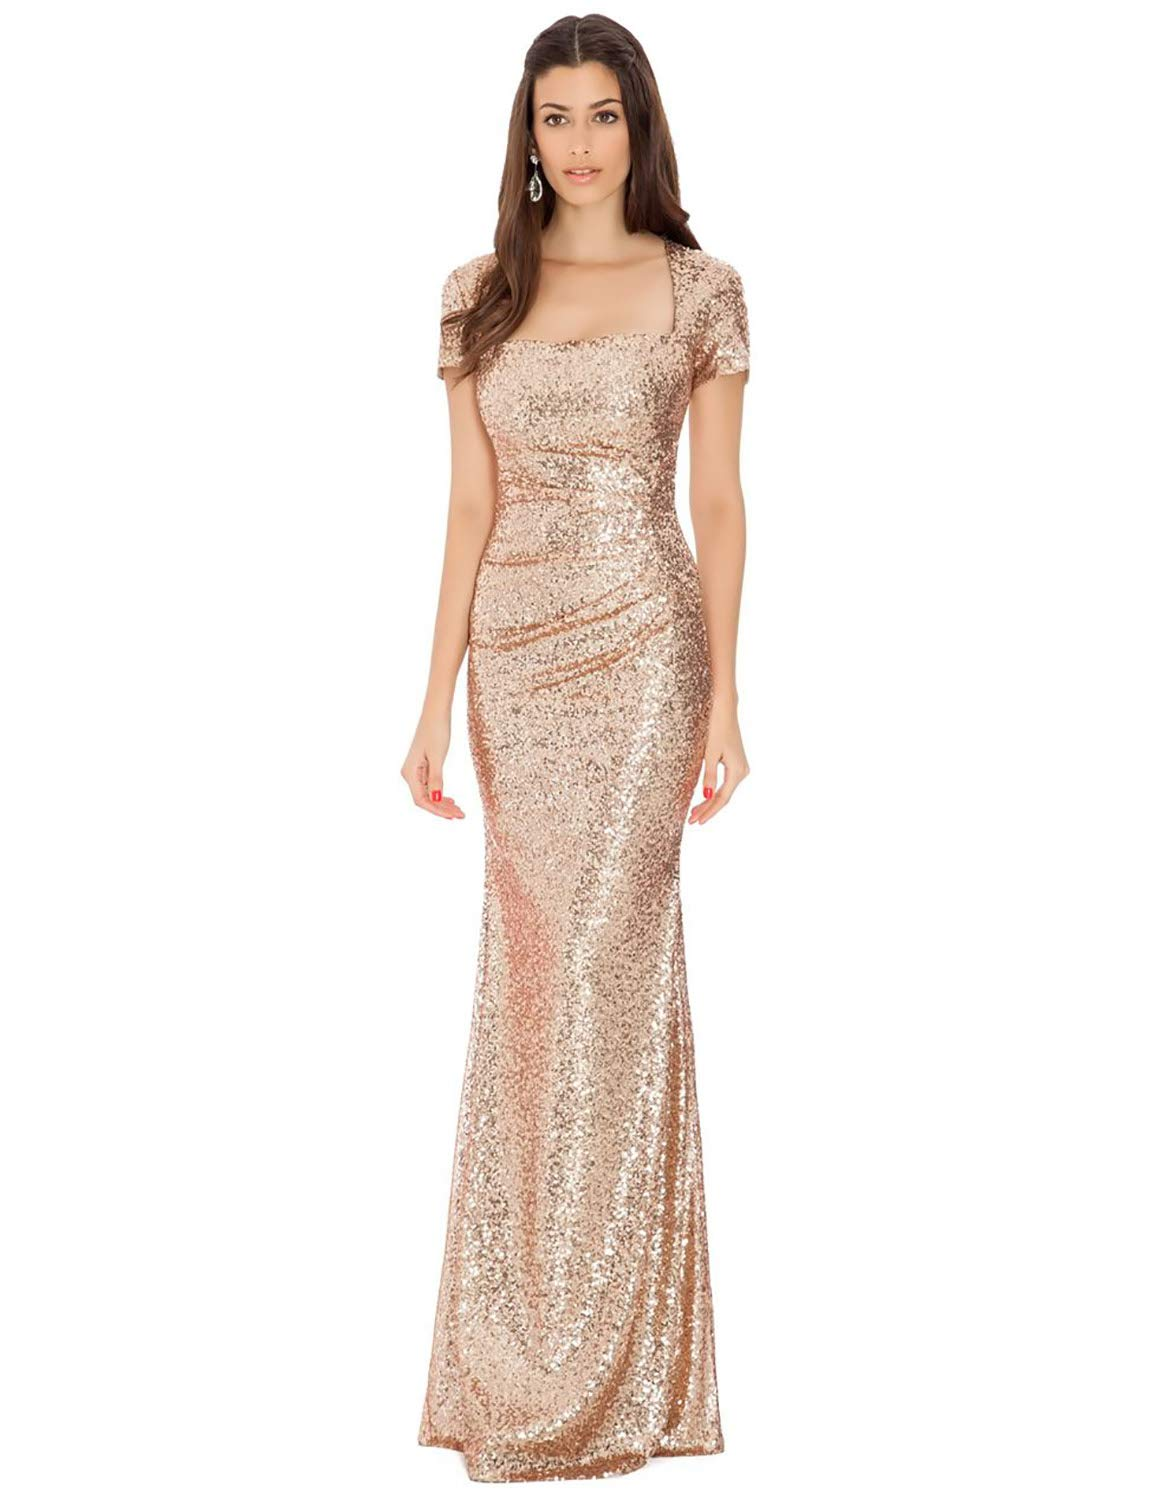 Square Neck Plus Size Evening Dresses for Women Sequined Prom Dress 2019  Full Length Formal Party Gown Empire Waist Cap Sleeves Wedding Dress Rose  ...